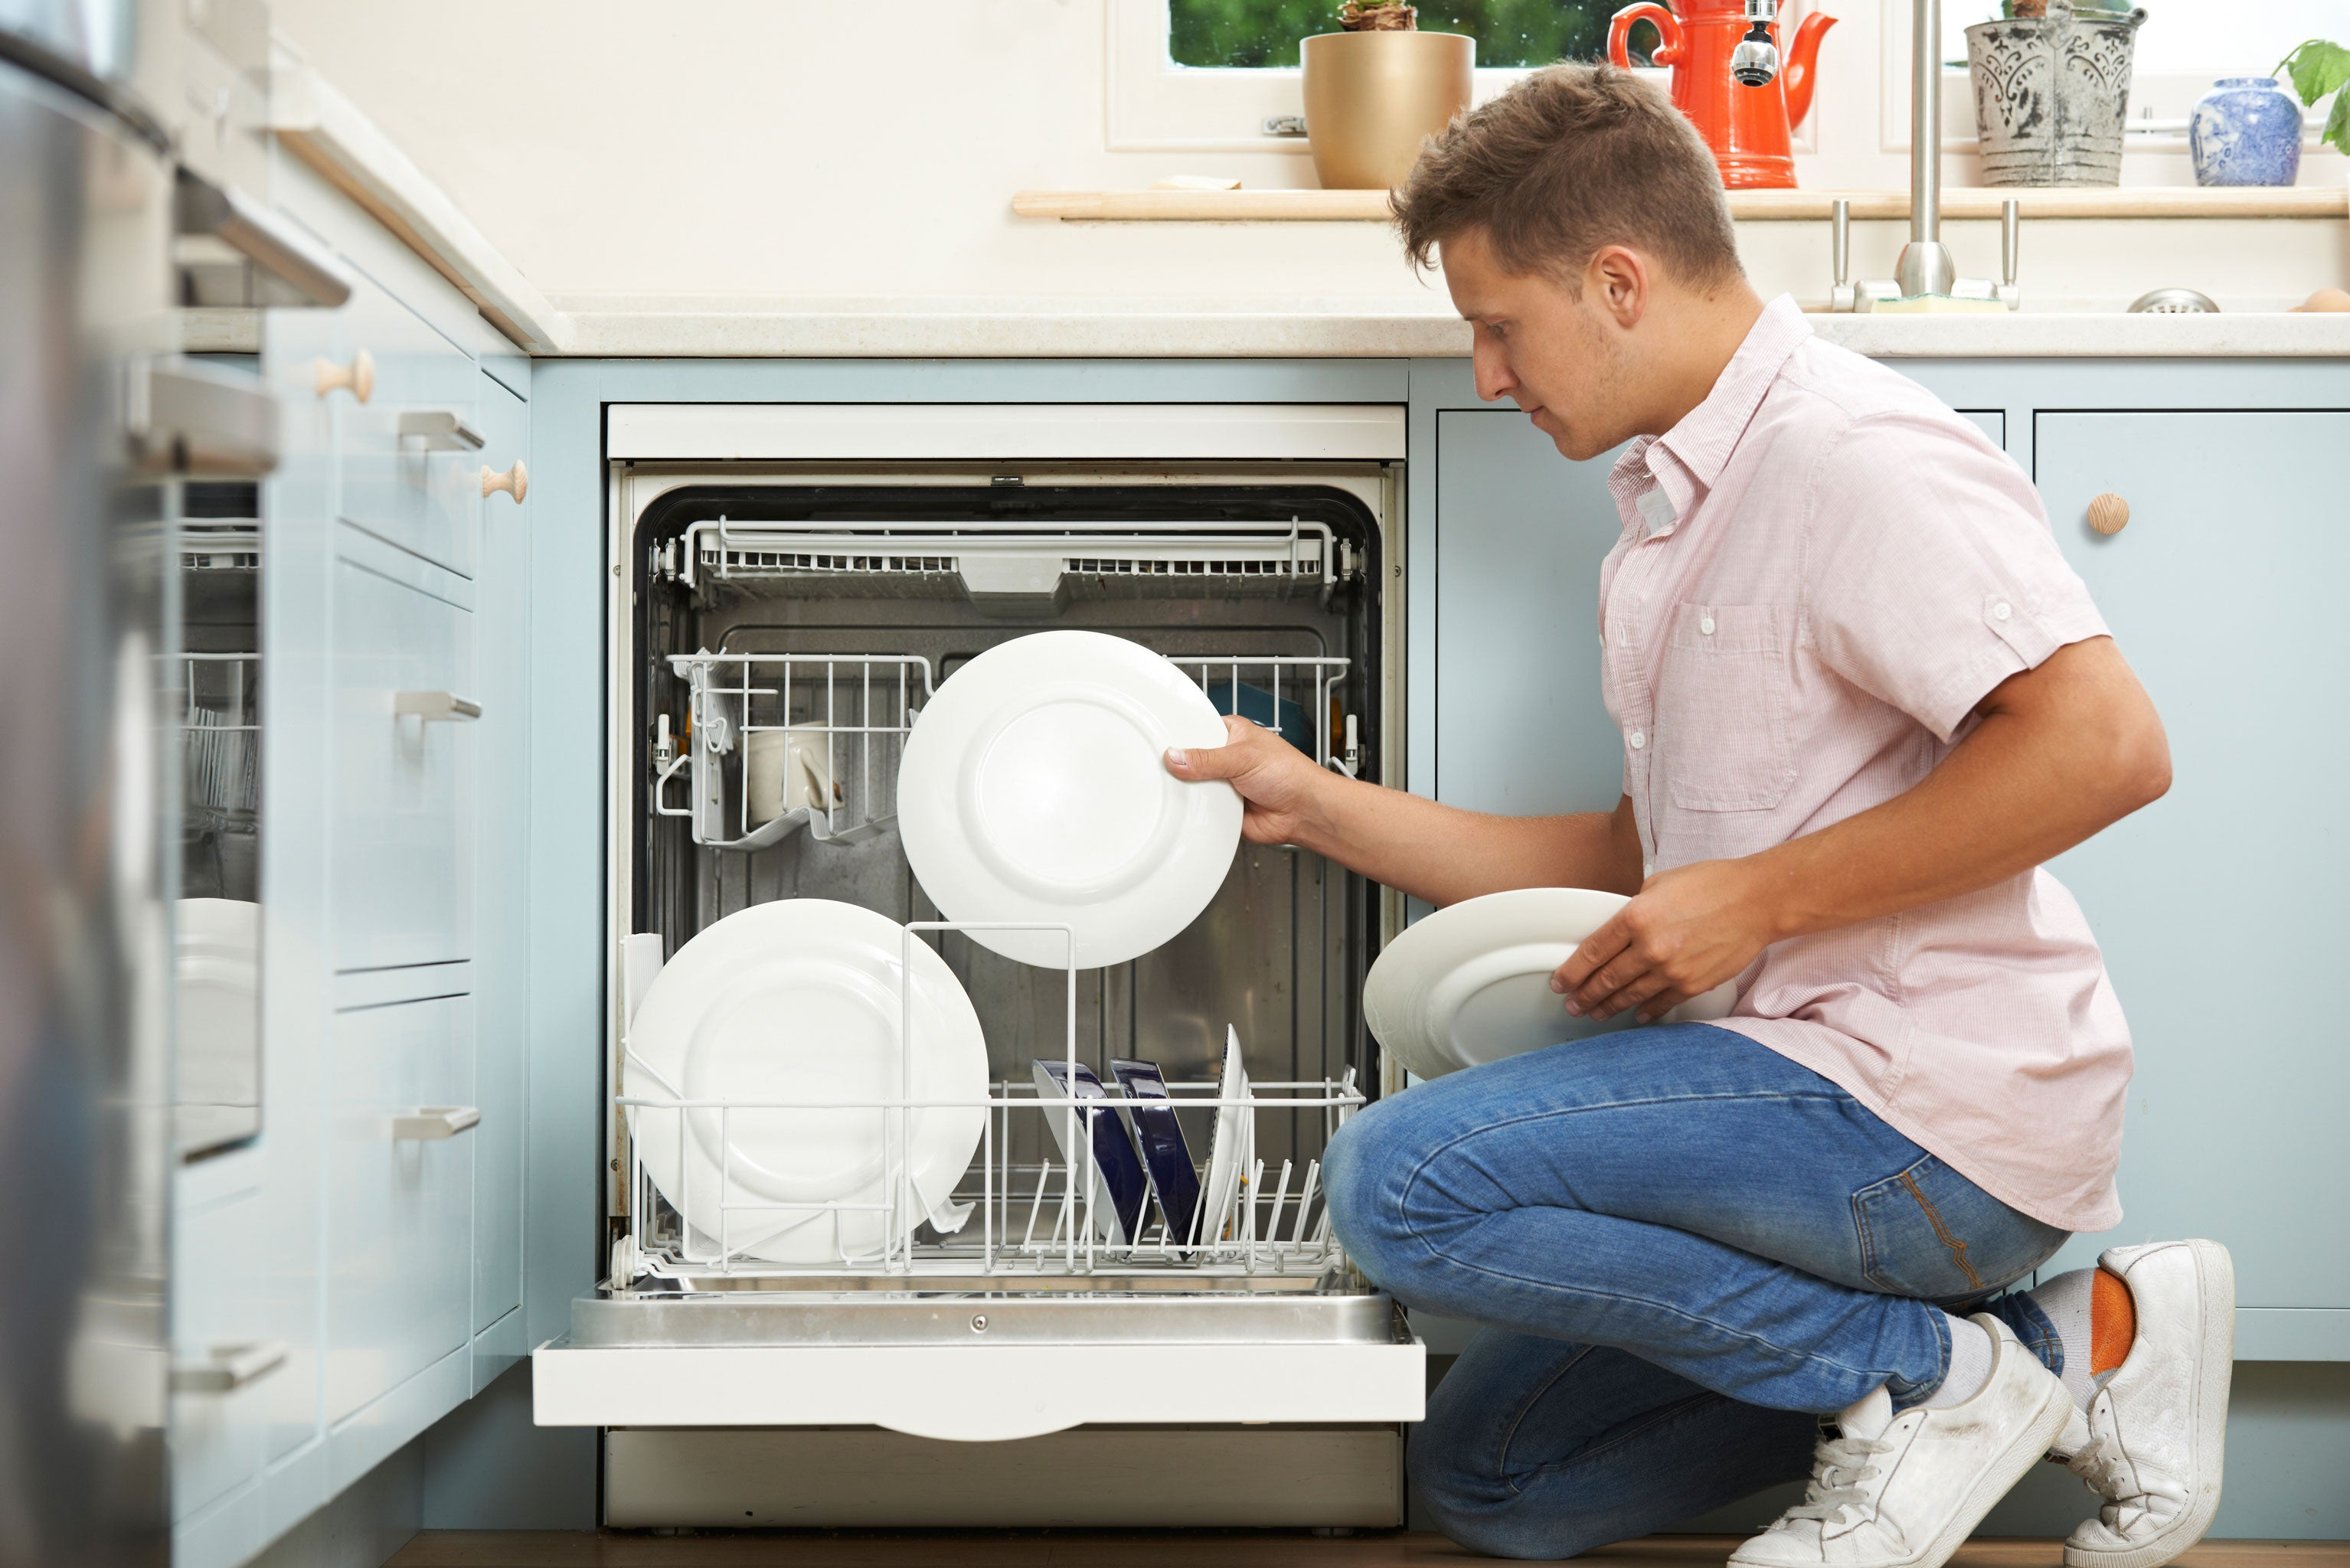 Dishwasher Do's and Don'ts